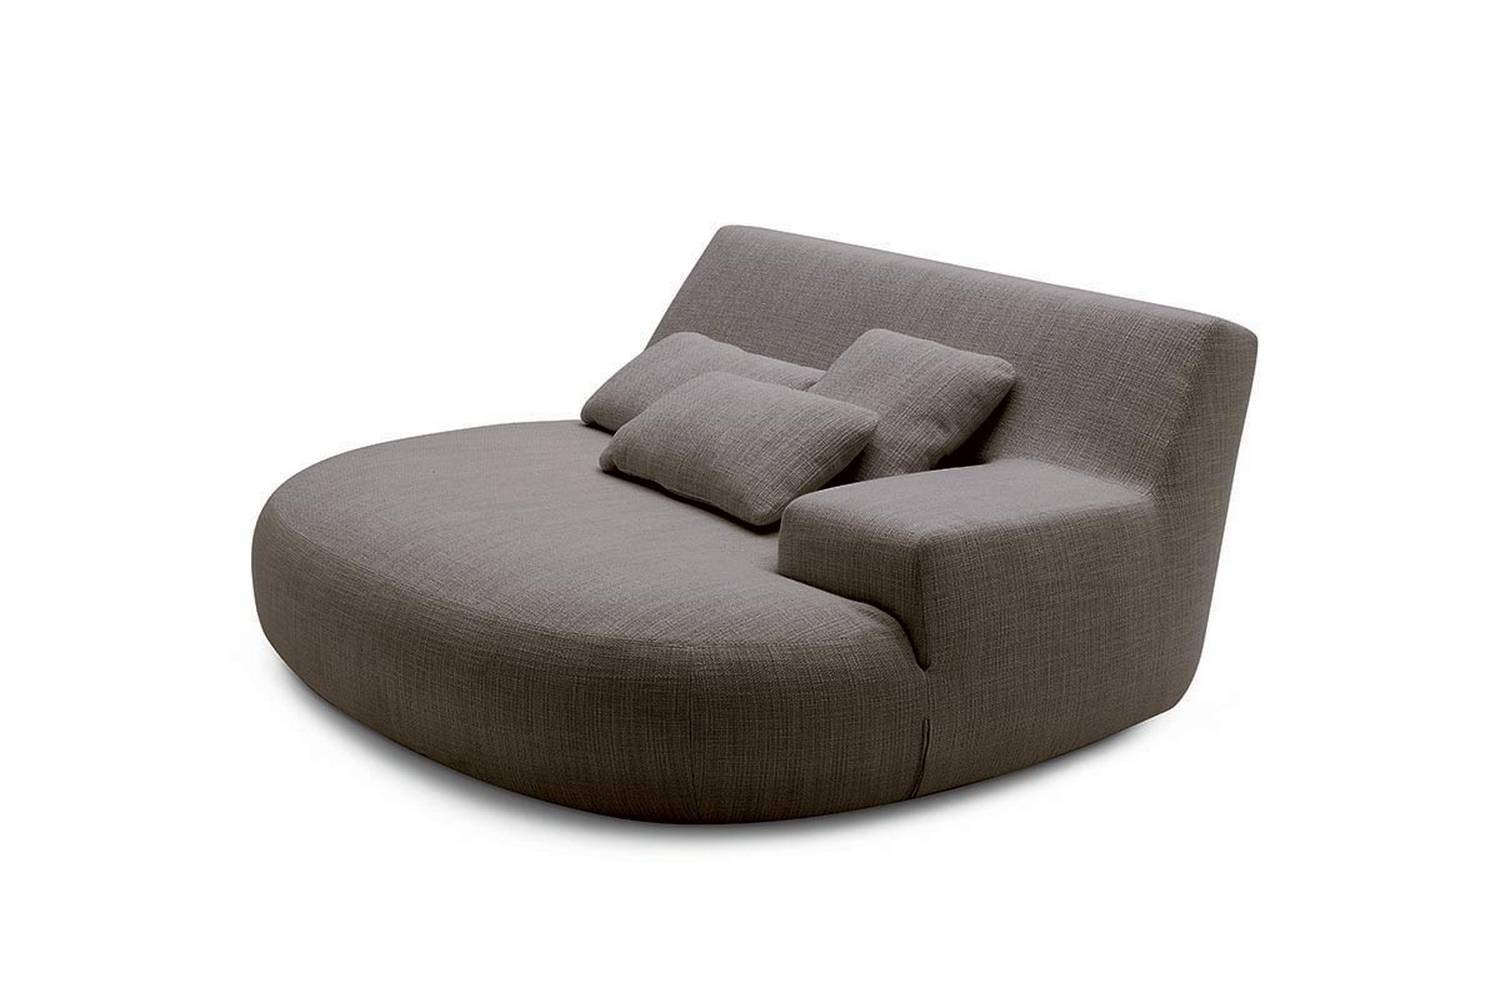 Big Bug Armchair by Paola Navone for Poliform